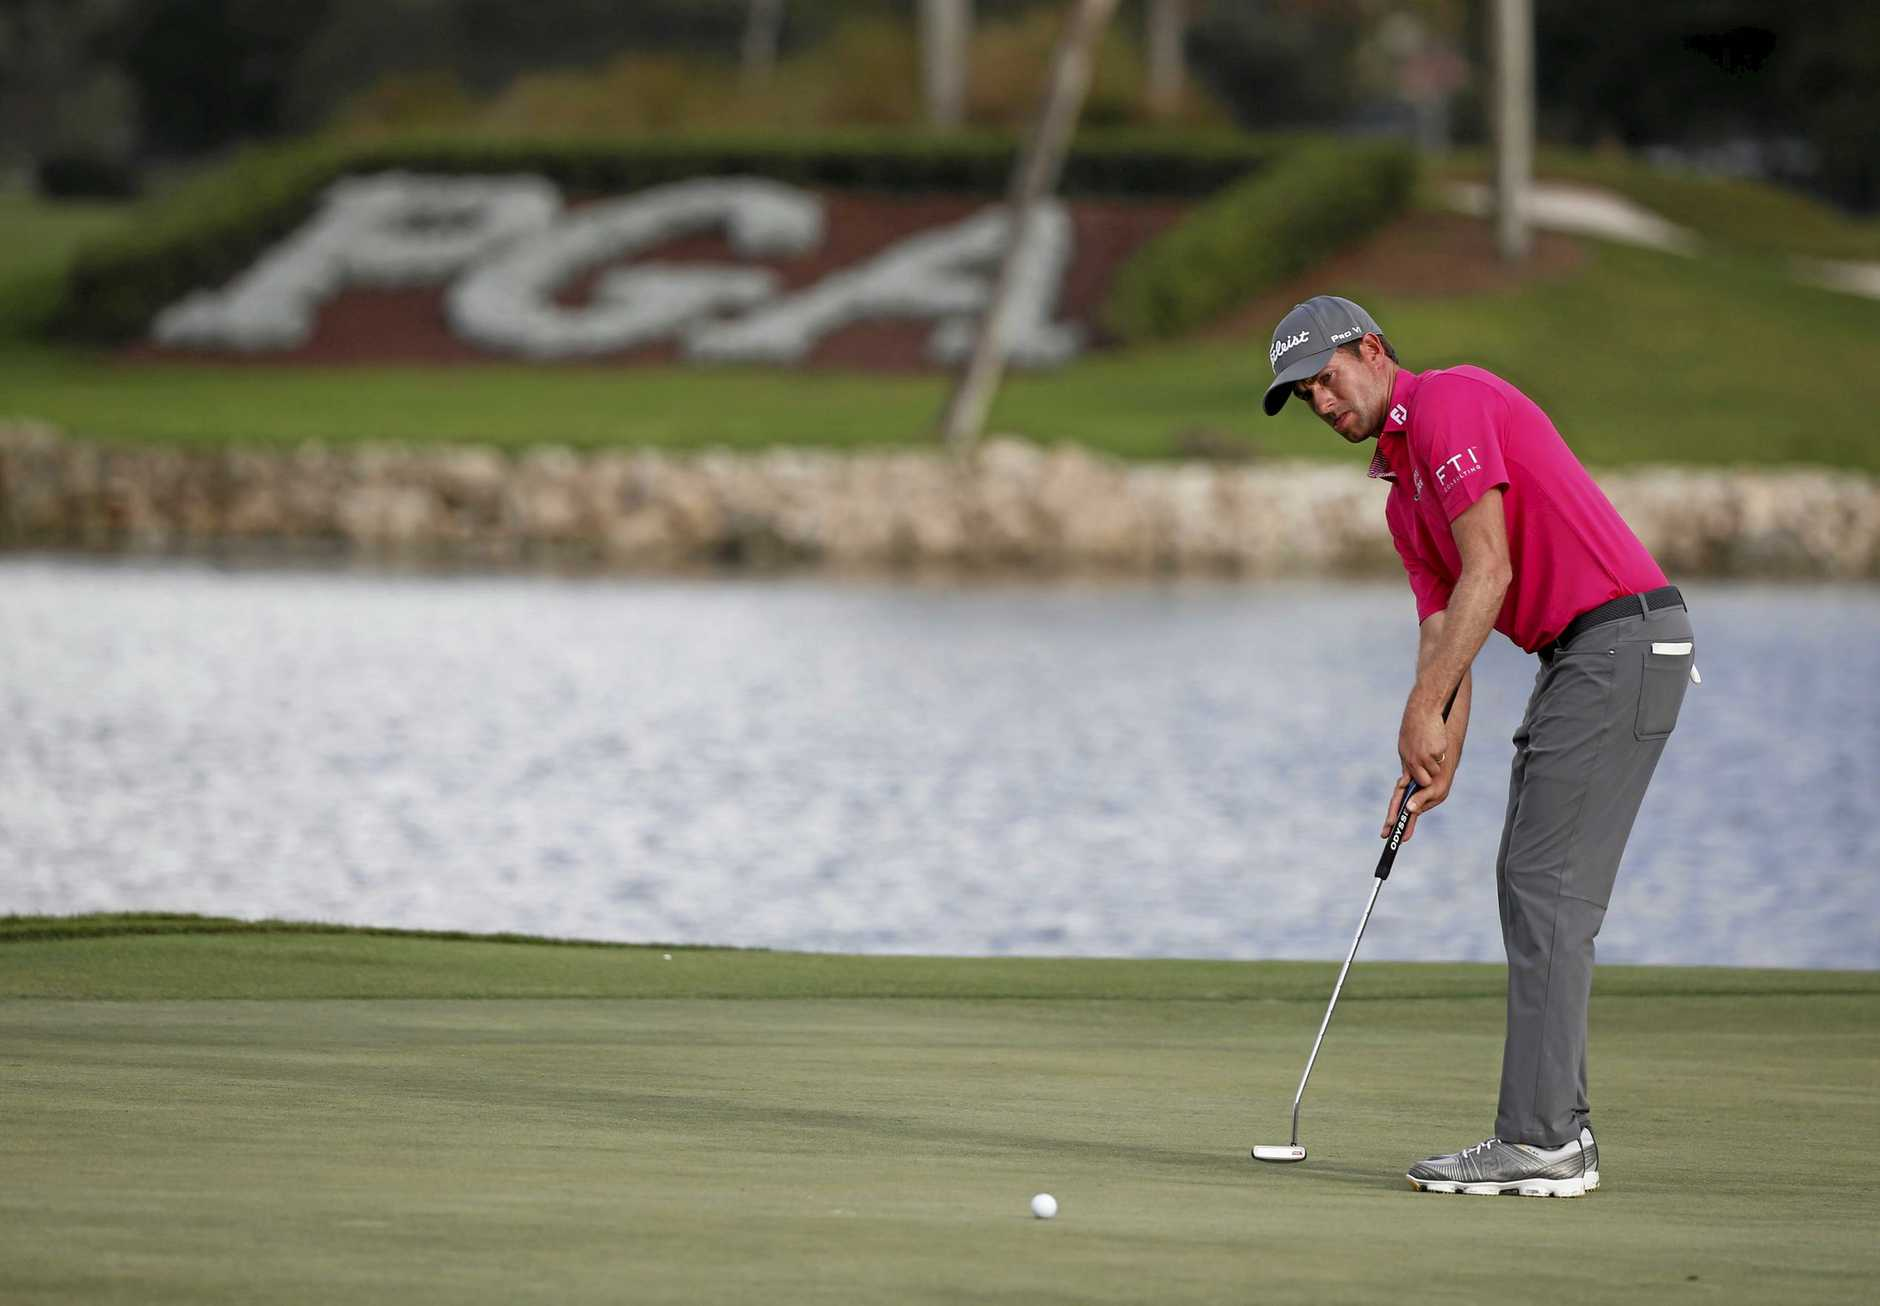 Webb Simpson putts out on the 18th hole during the first round of the Honda Classic.